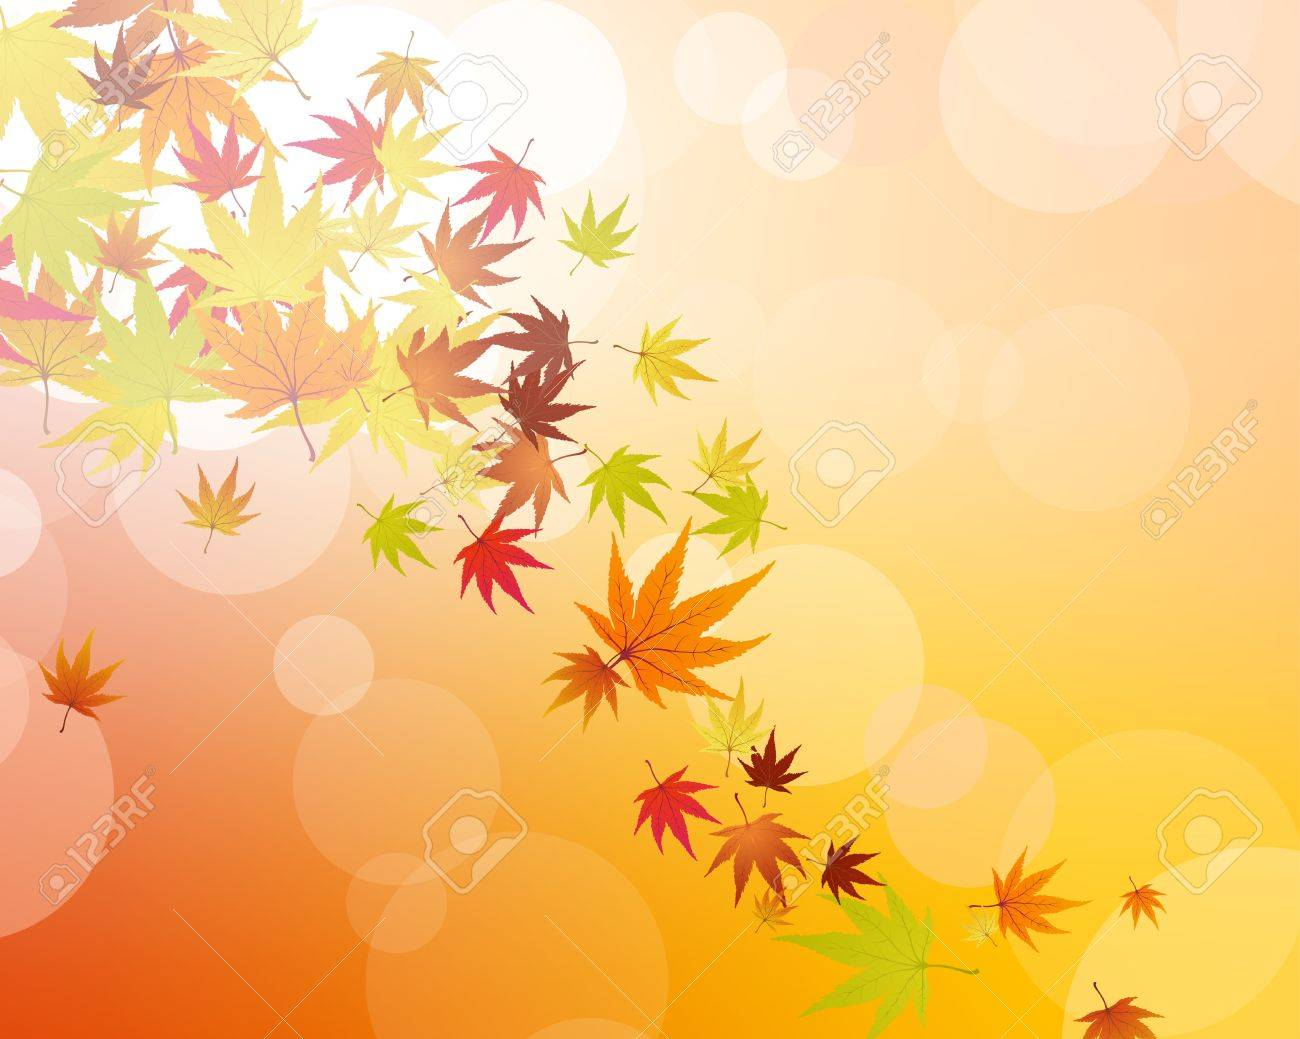 Pattern of autumn  maples leaves. Vector illustration. Stock Vector - 10367849